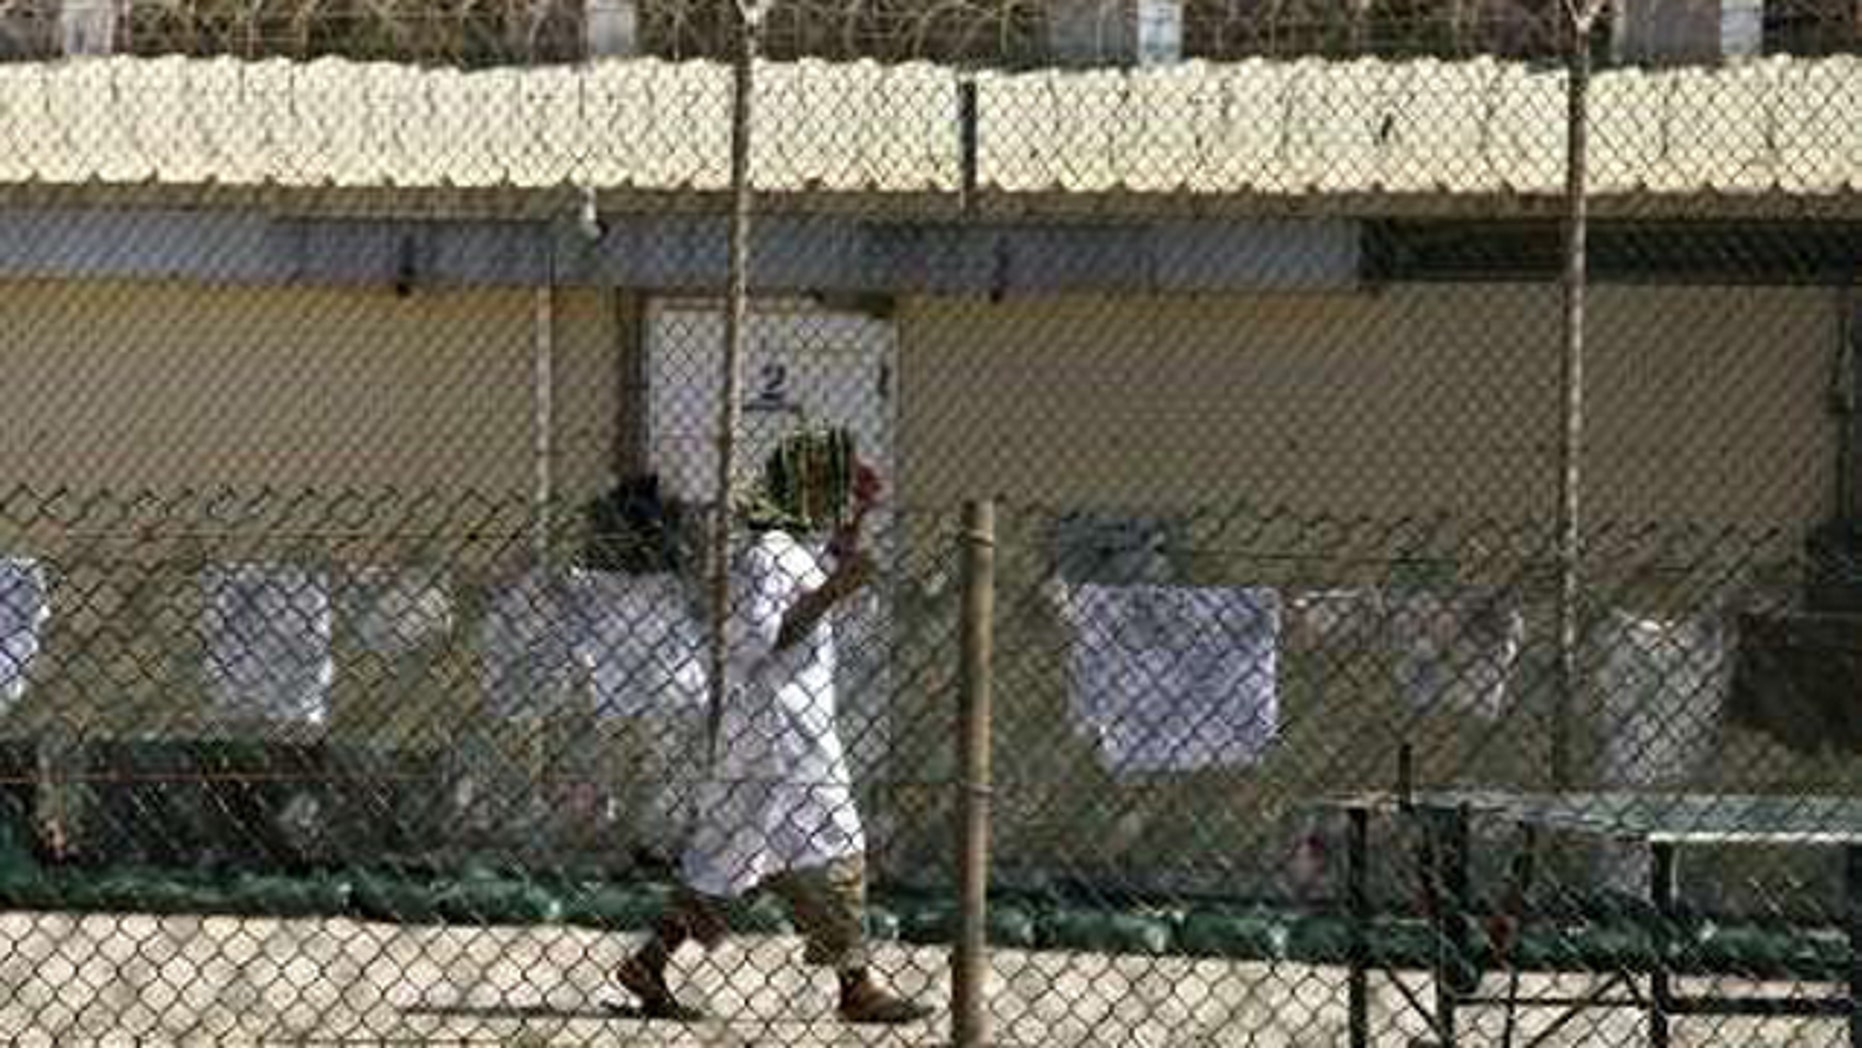 A detainee walks inside a yard at the detention facility at Guantanamo Bay May 31, 2010.